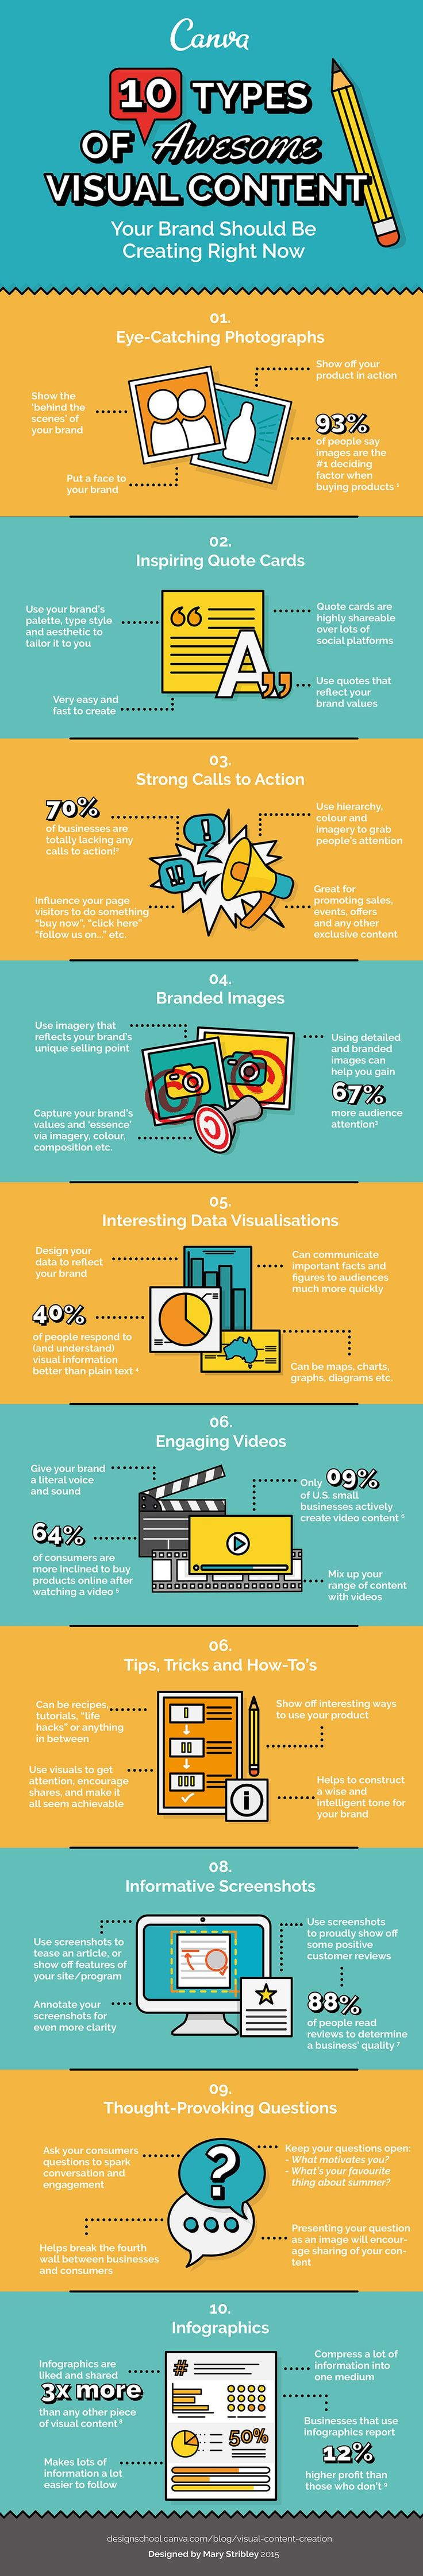 10 Types Of Visual Content That Will Improve Your Social Engagement - #Infographic